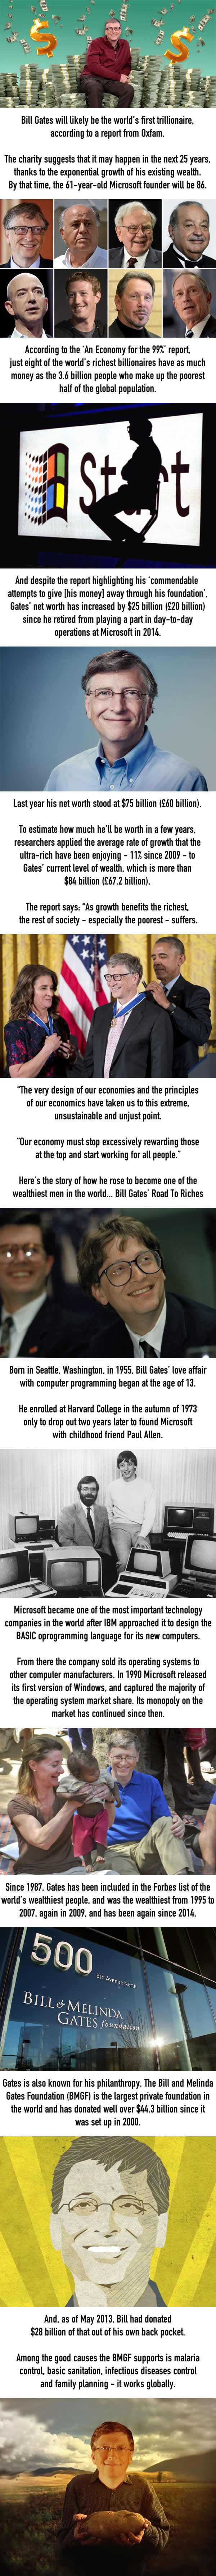 Bill Gates Is Likely To Become The World's First Trillionaire